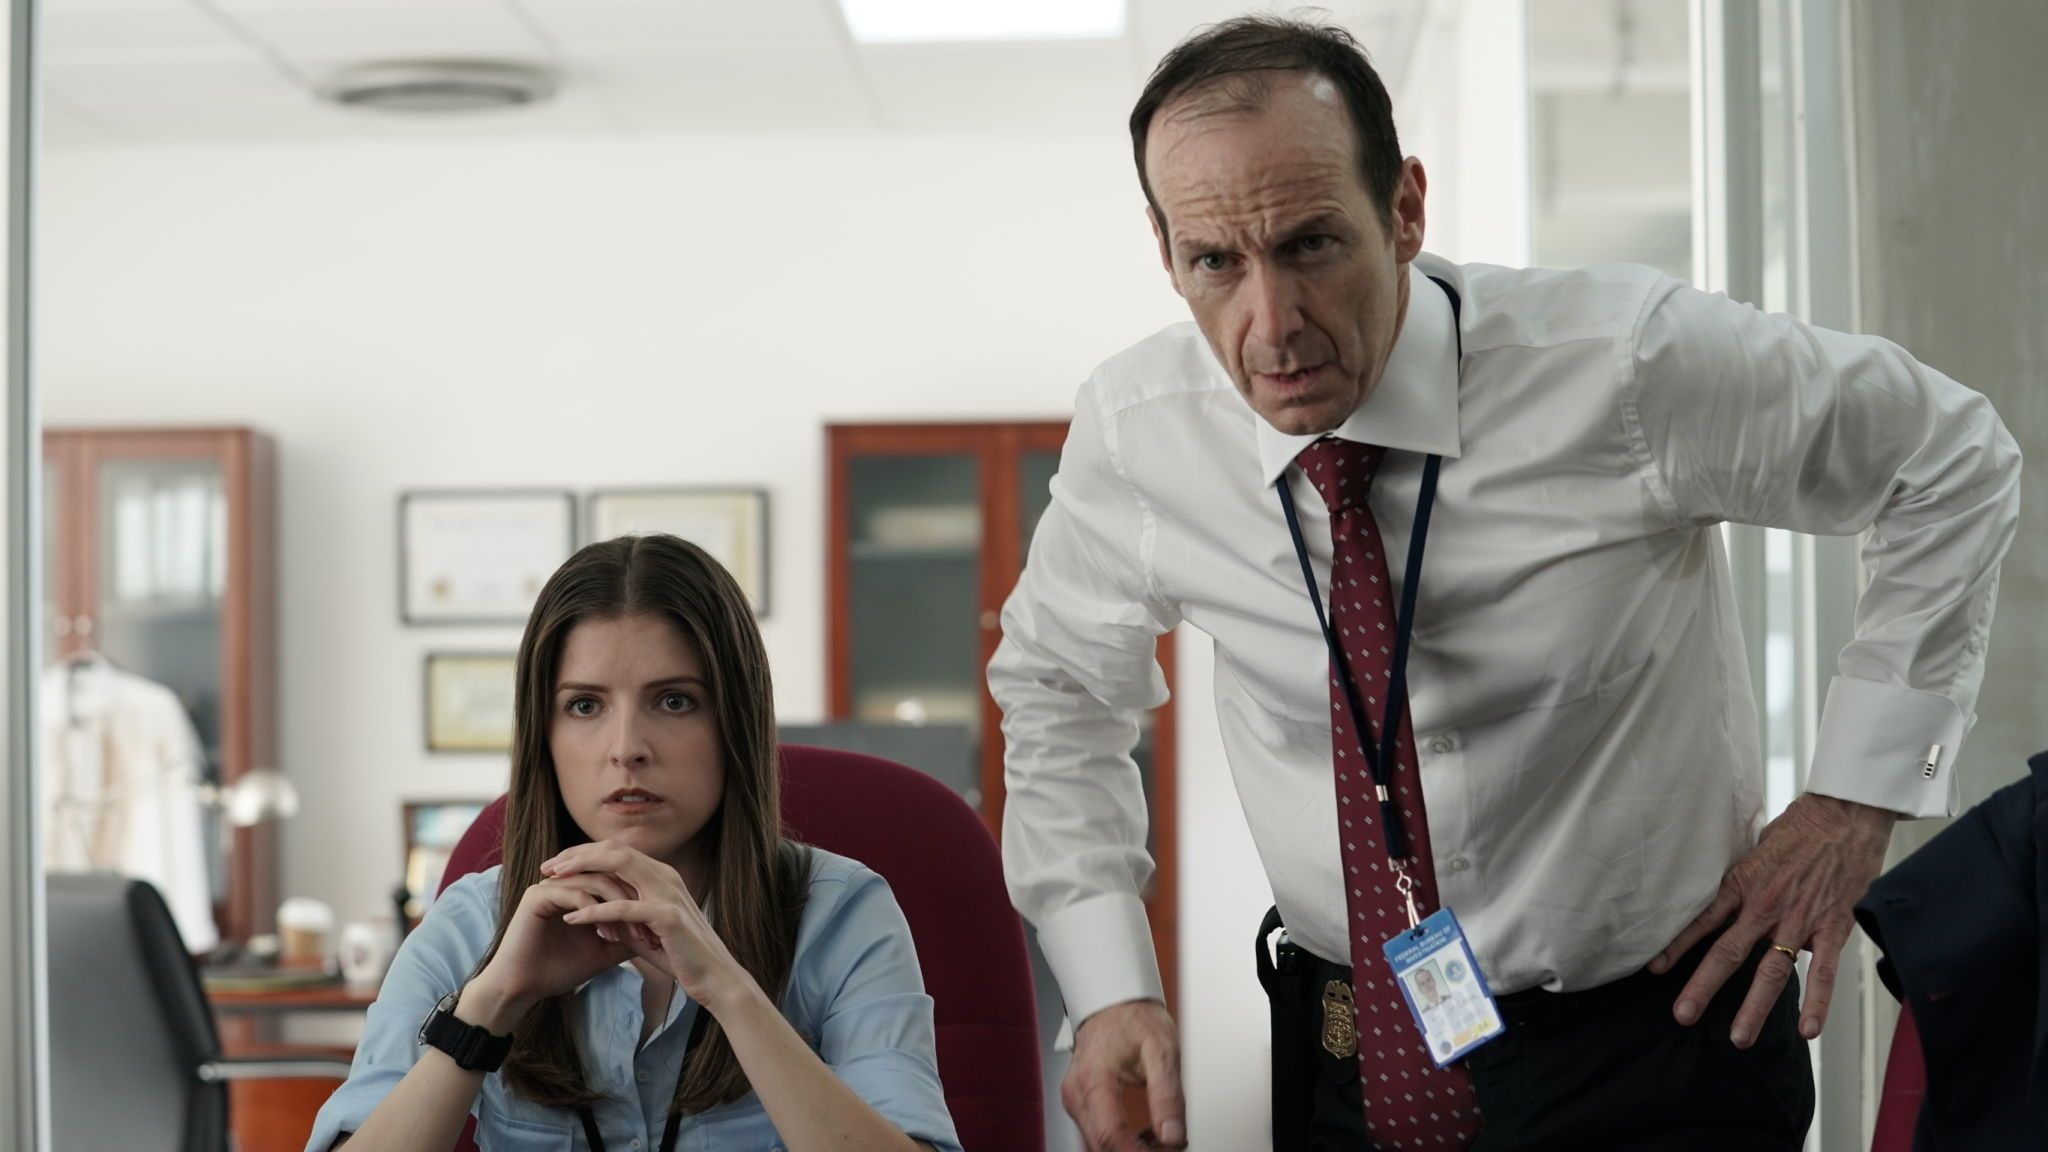 Anna Kendrick and Denis O'Hare play FBI officers trying to lure jihadi terrorists into the open